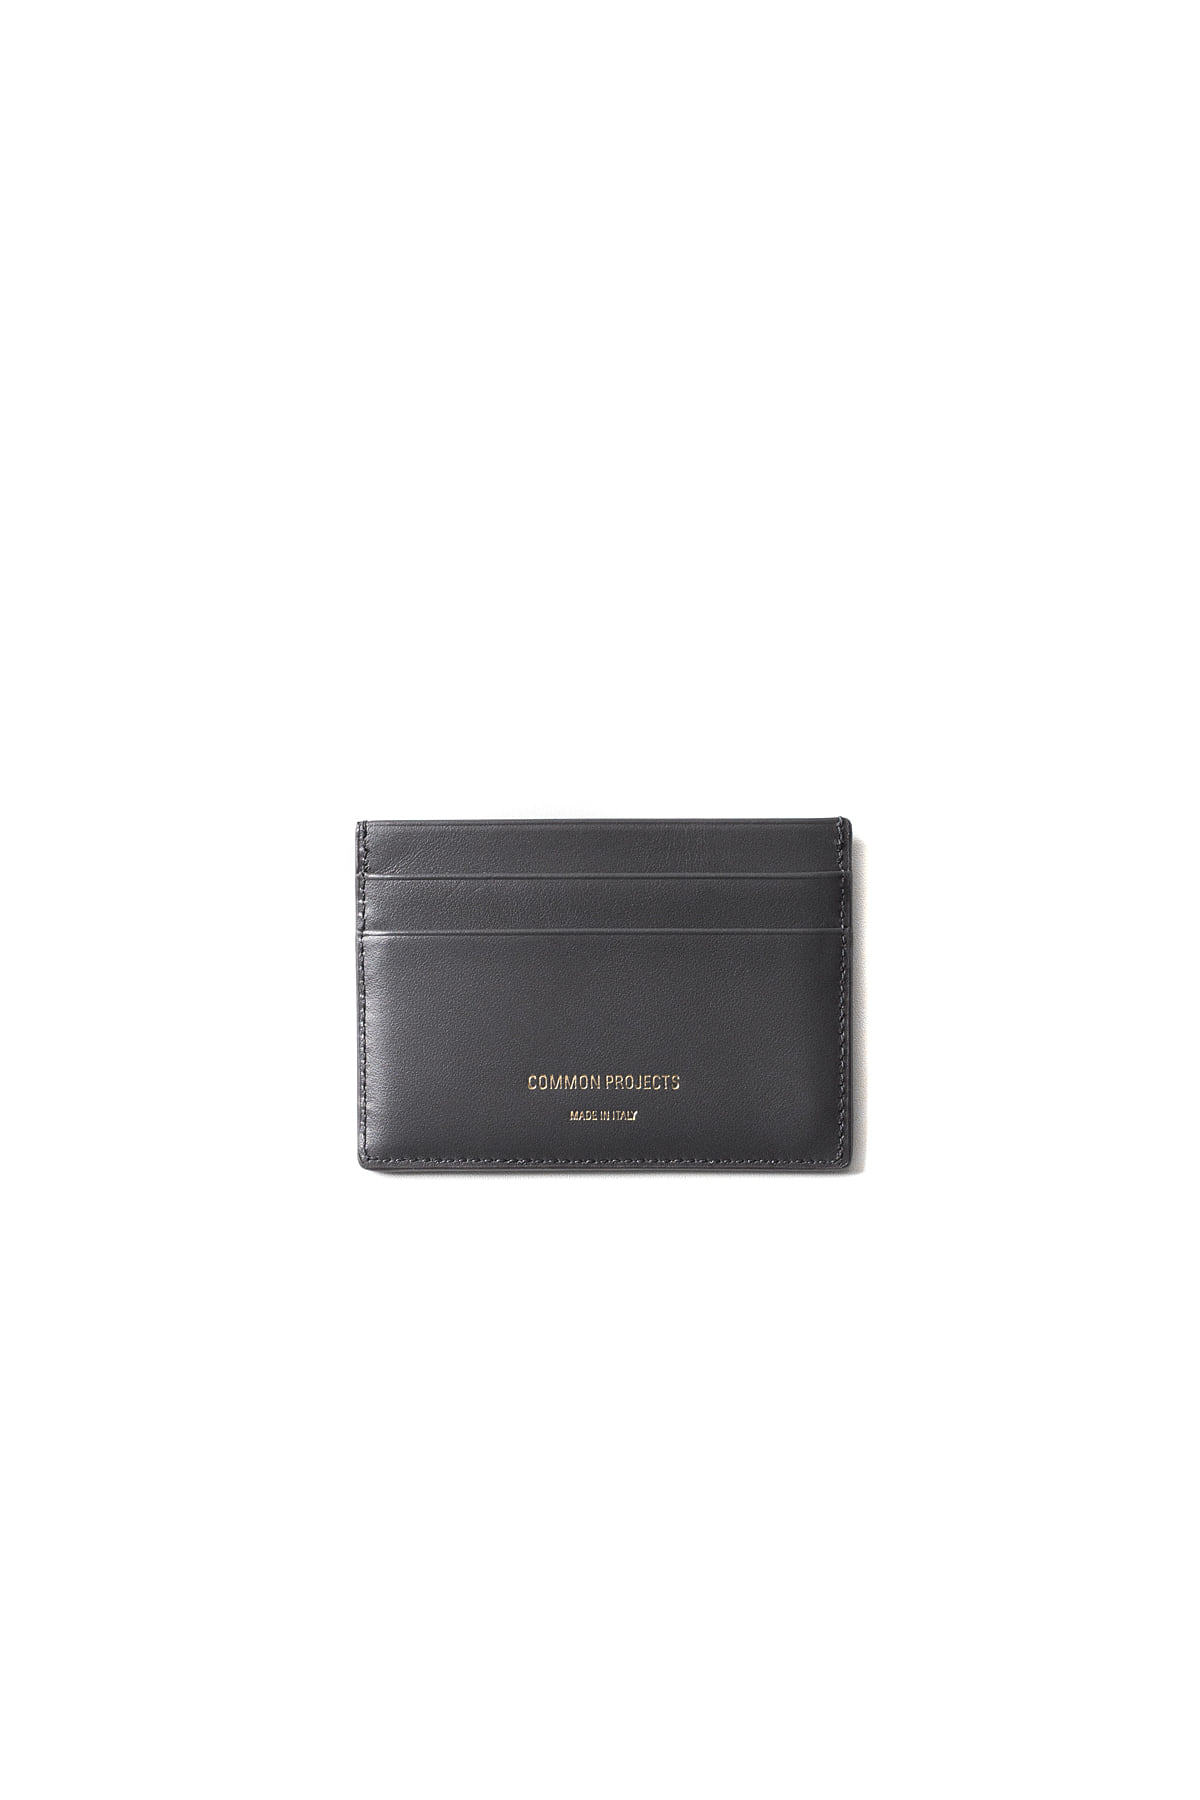 Common Projects : Multi Card Holder (Blue Grey)